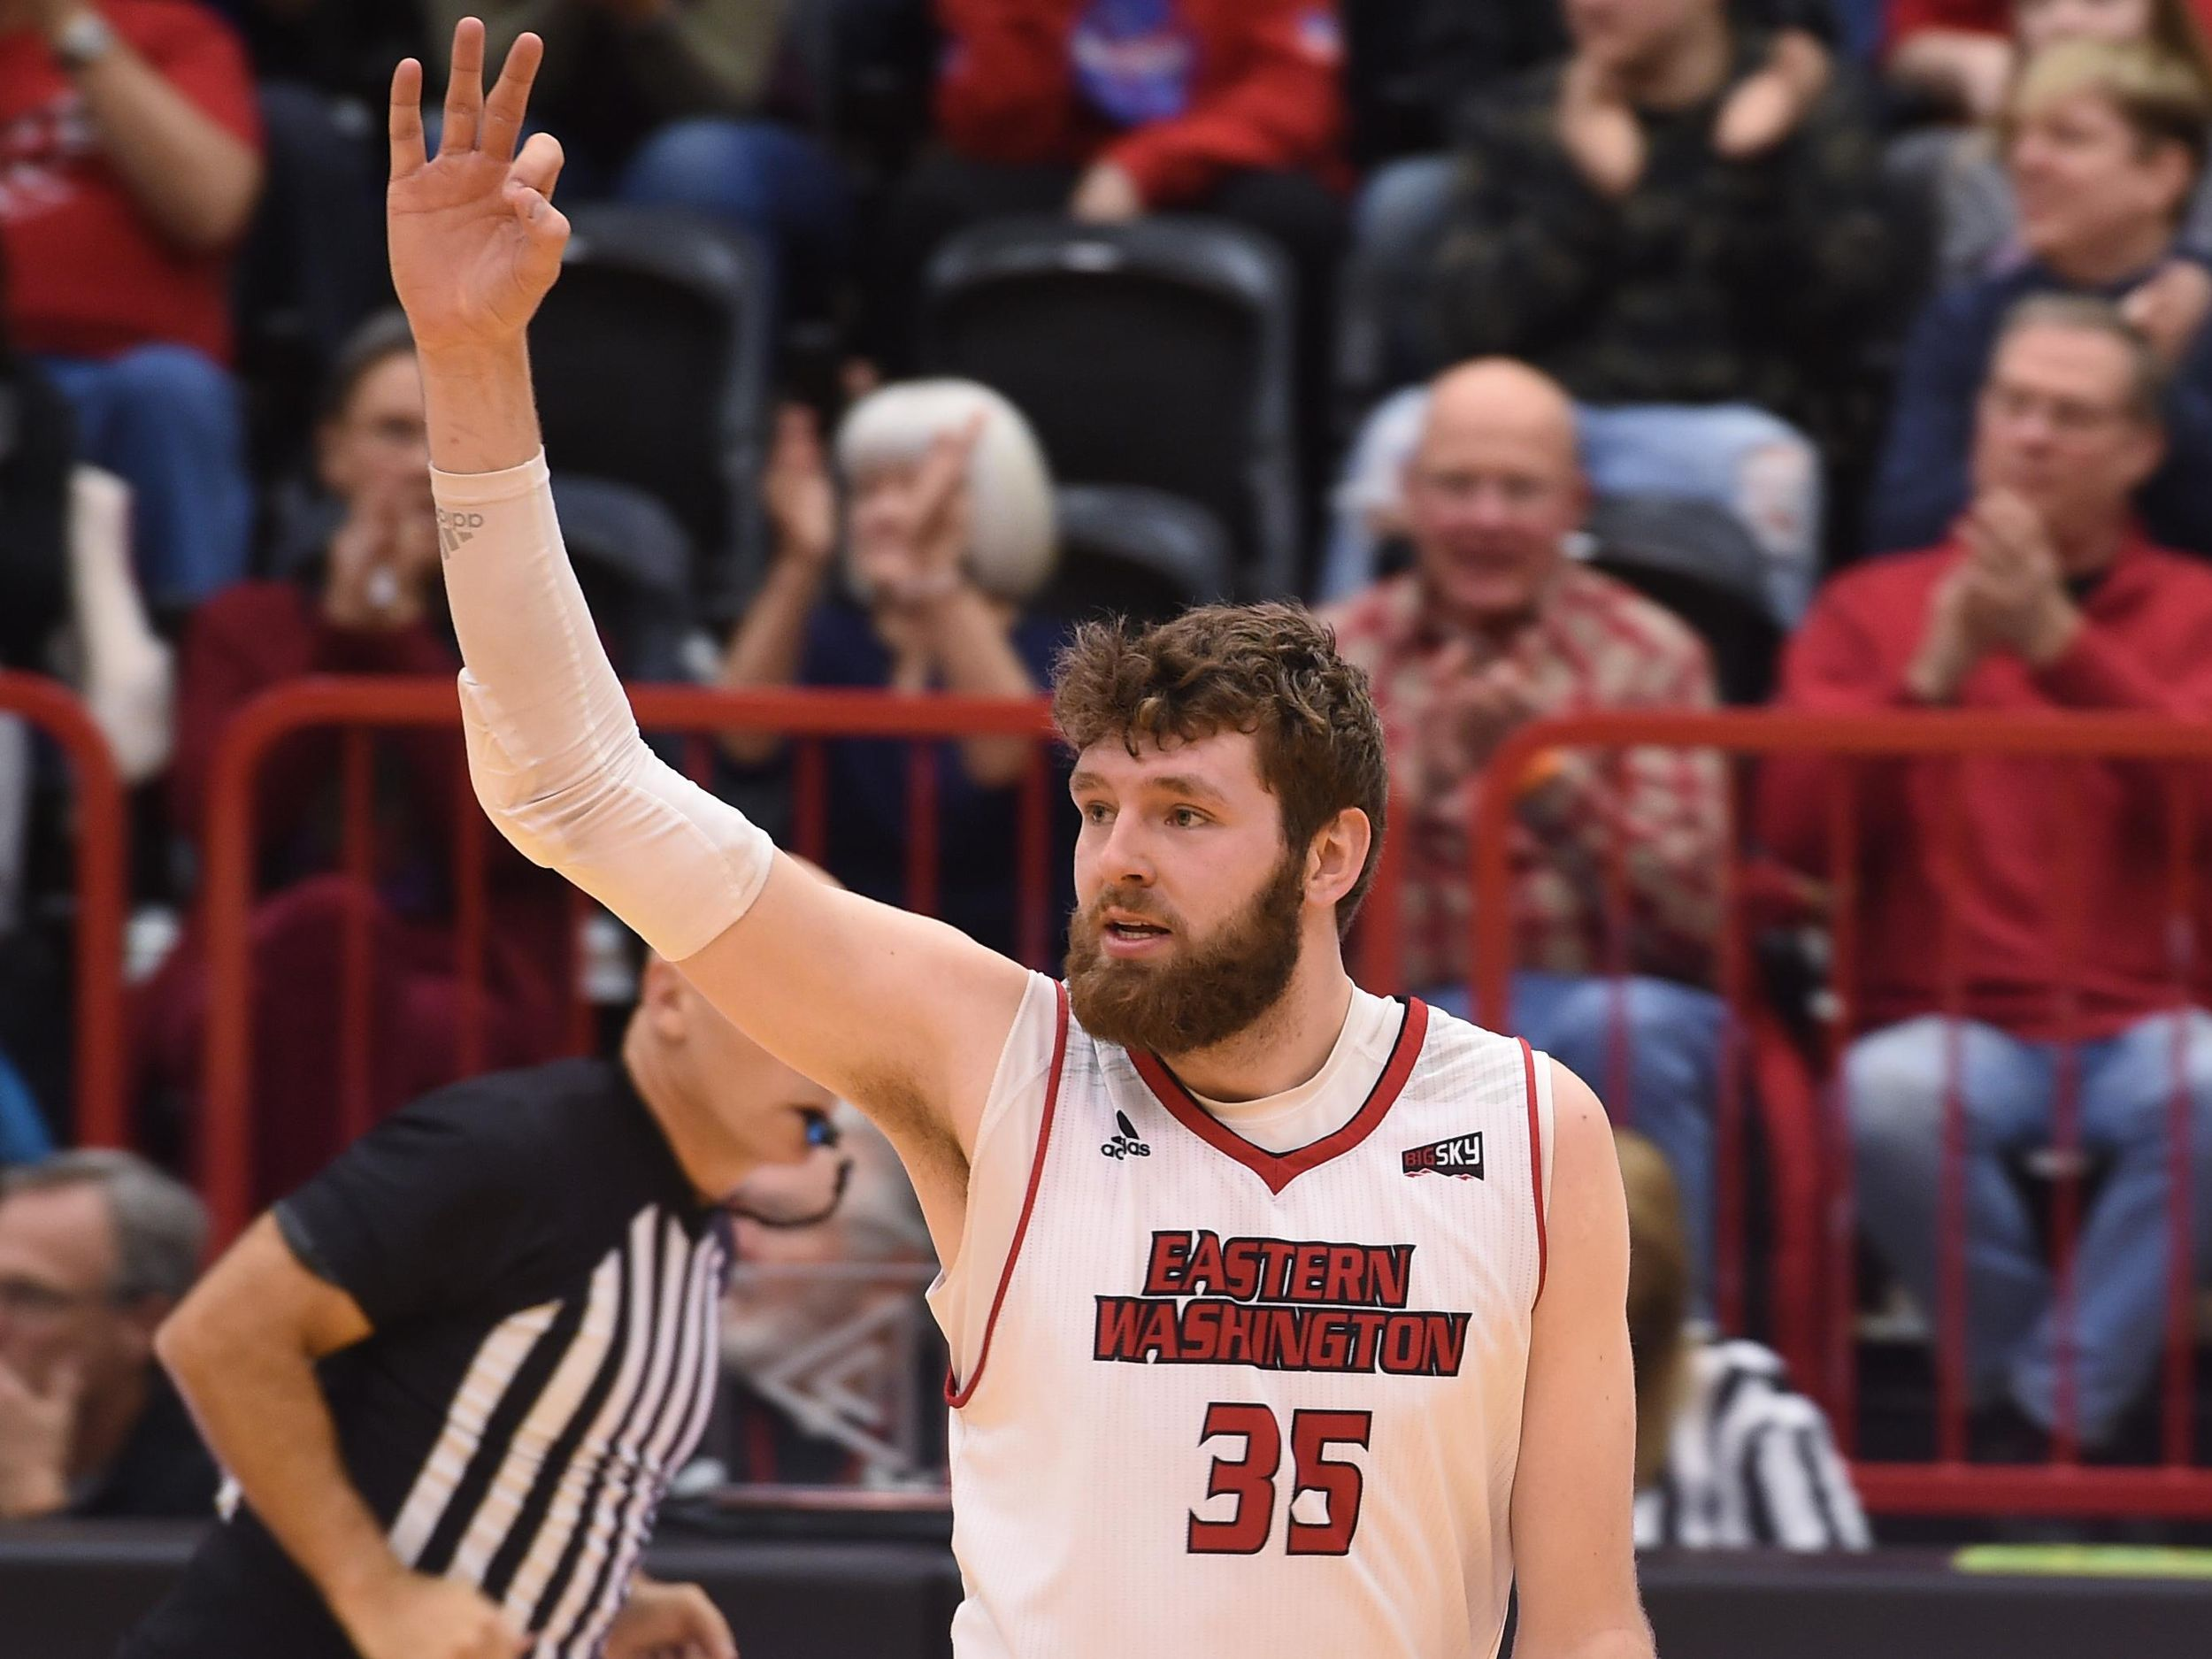 Mason Peatling, Tanner Groves help Eastern Washington bounce back, blow out  Montana State | The Spokesman-Review